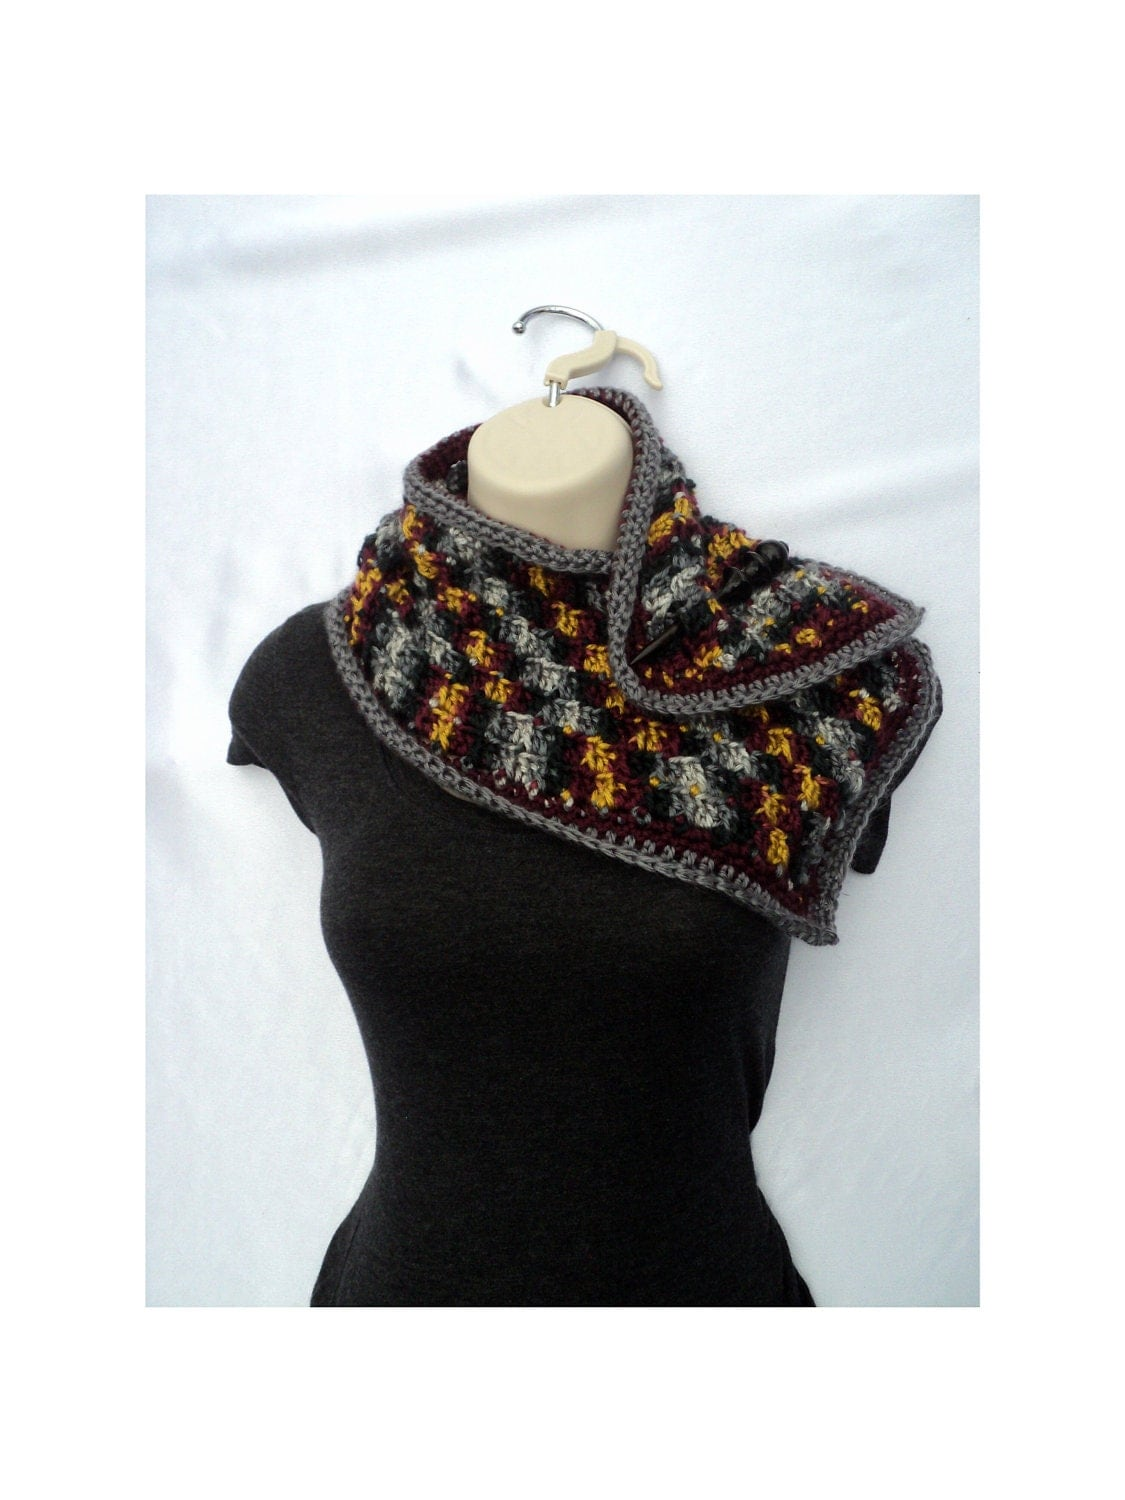 Crochet Patterns Neck Scarves : CROCHET PATTERN Popcorn Scarf Neck Warmer Wrap By Rusticcove